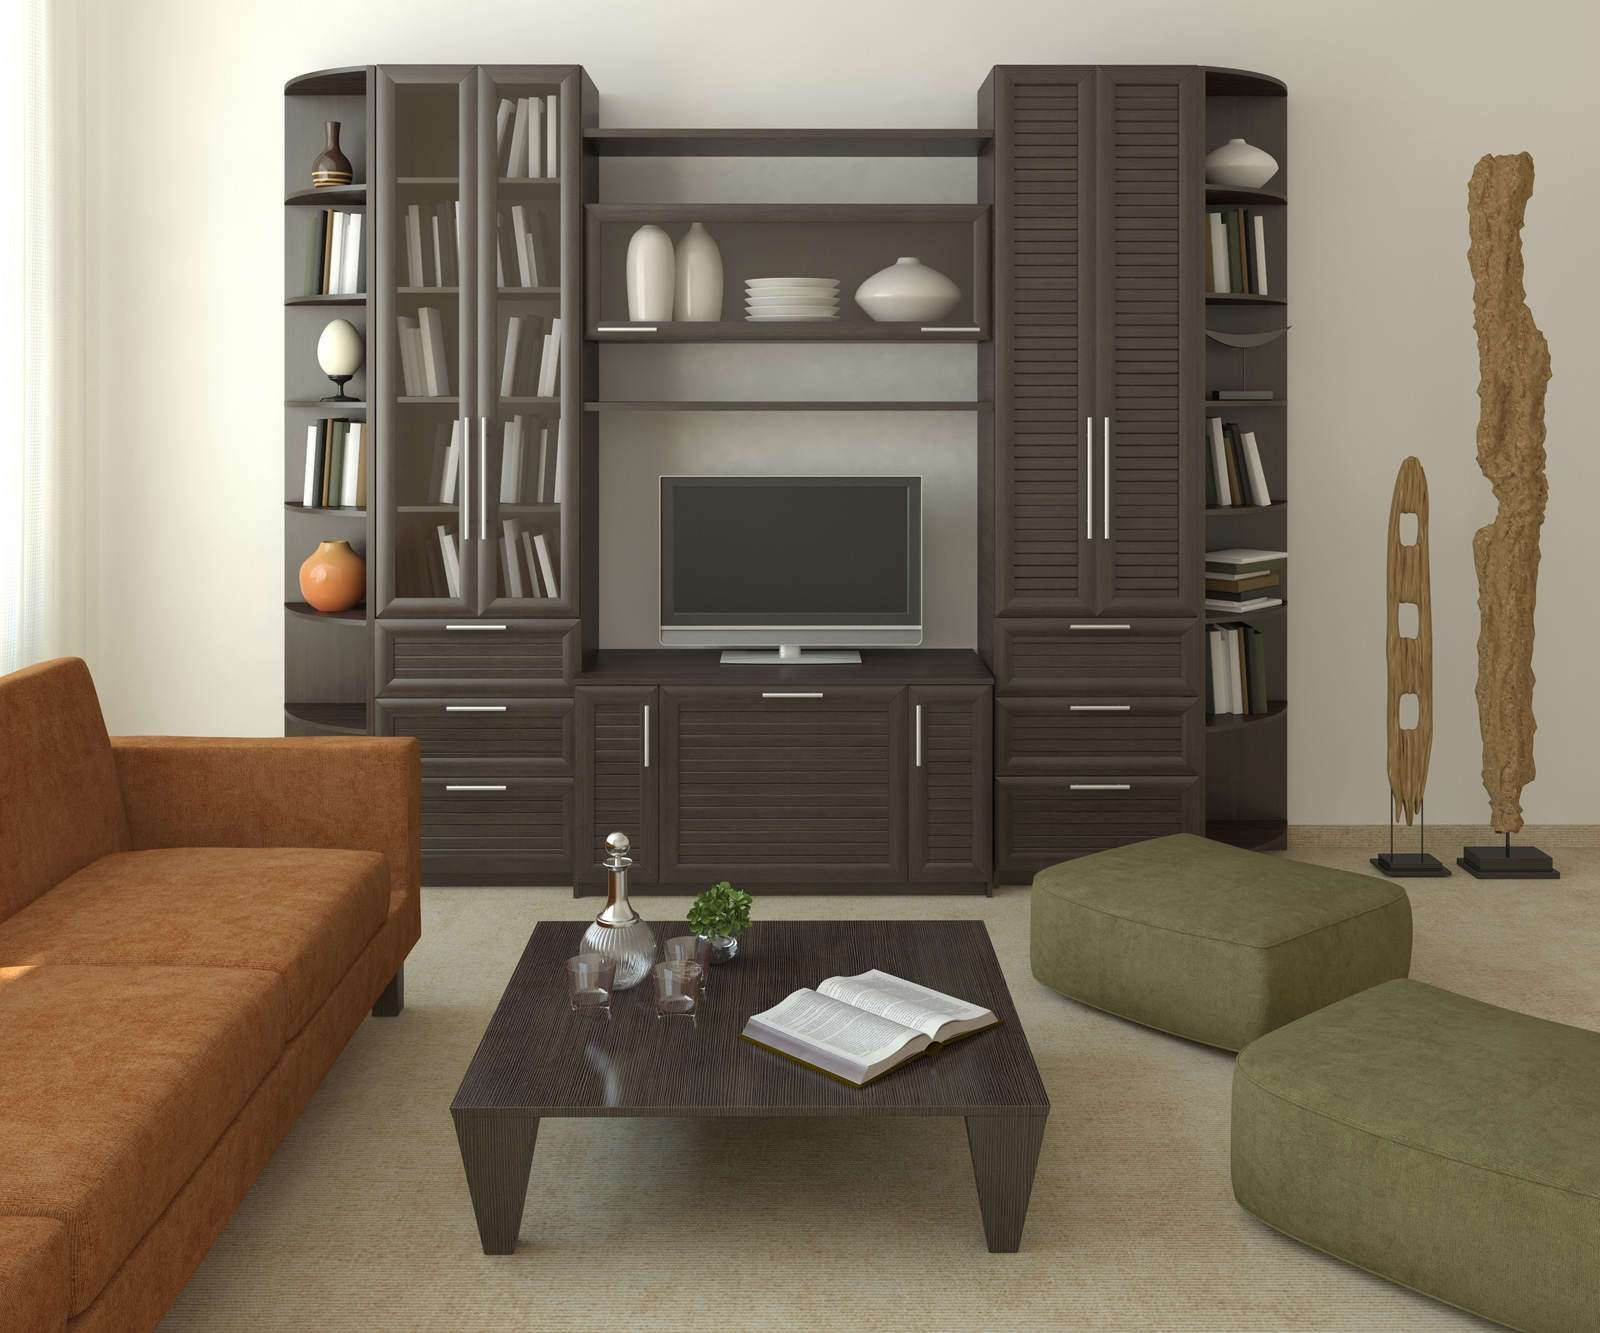 2019 latest full wall tv cabinets - Corner tables for living room online india ...